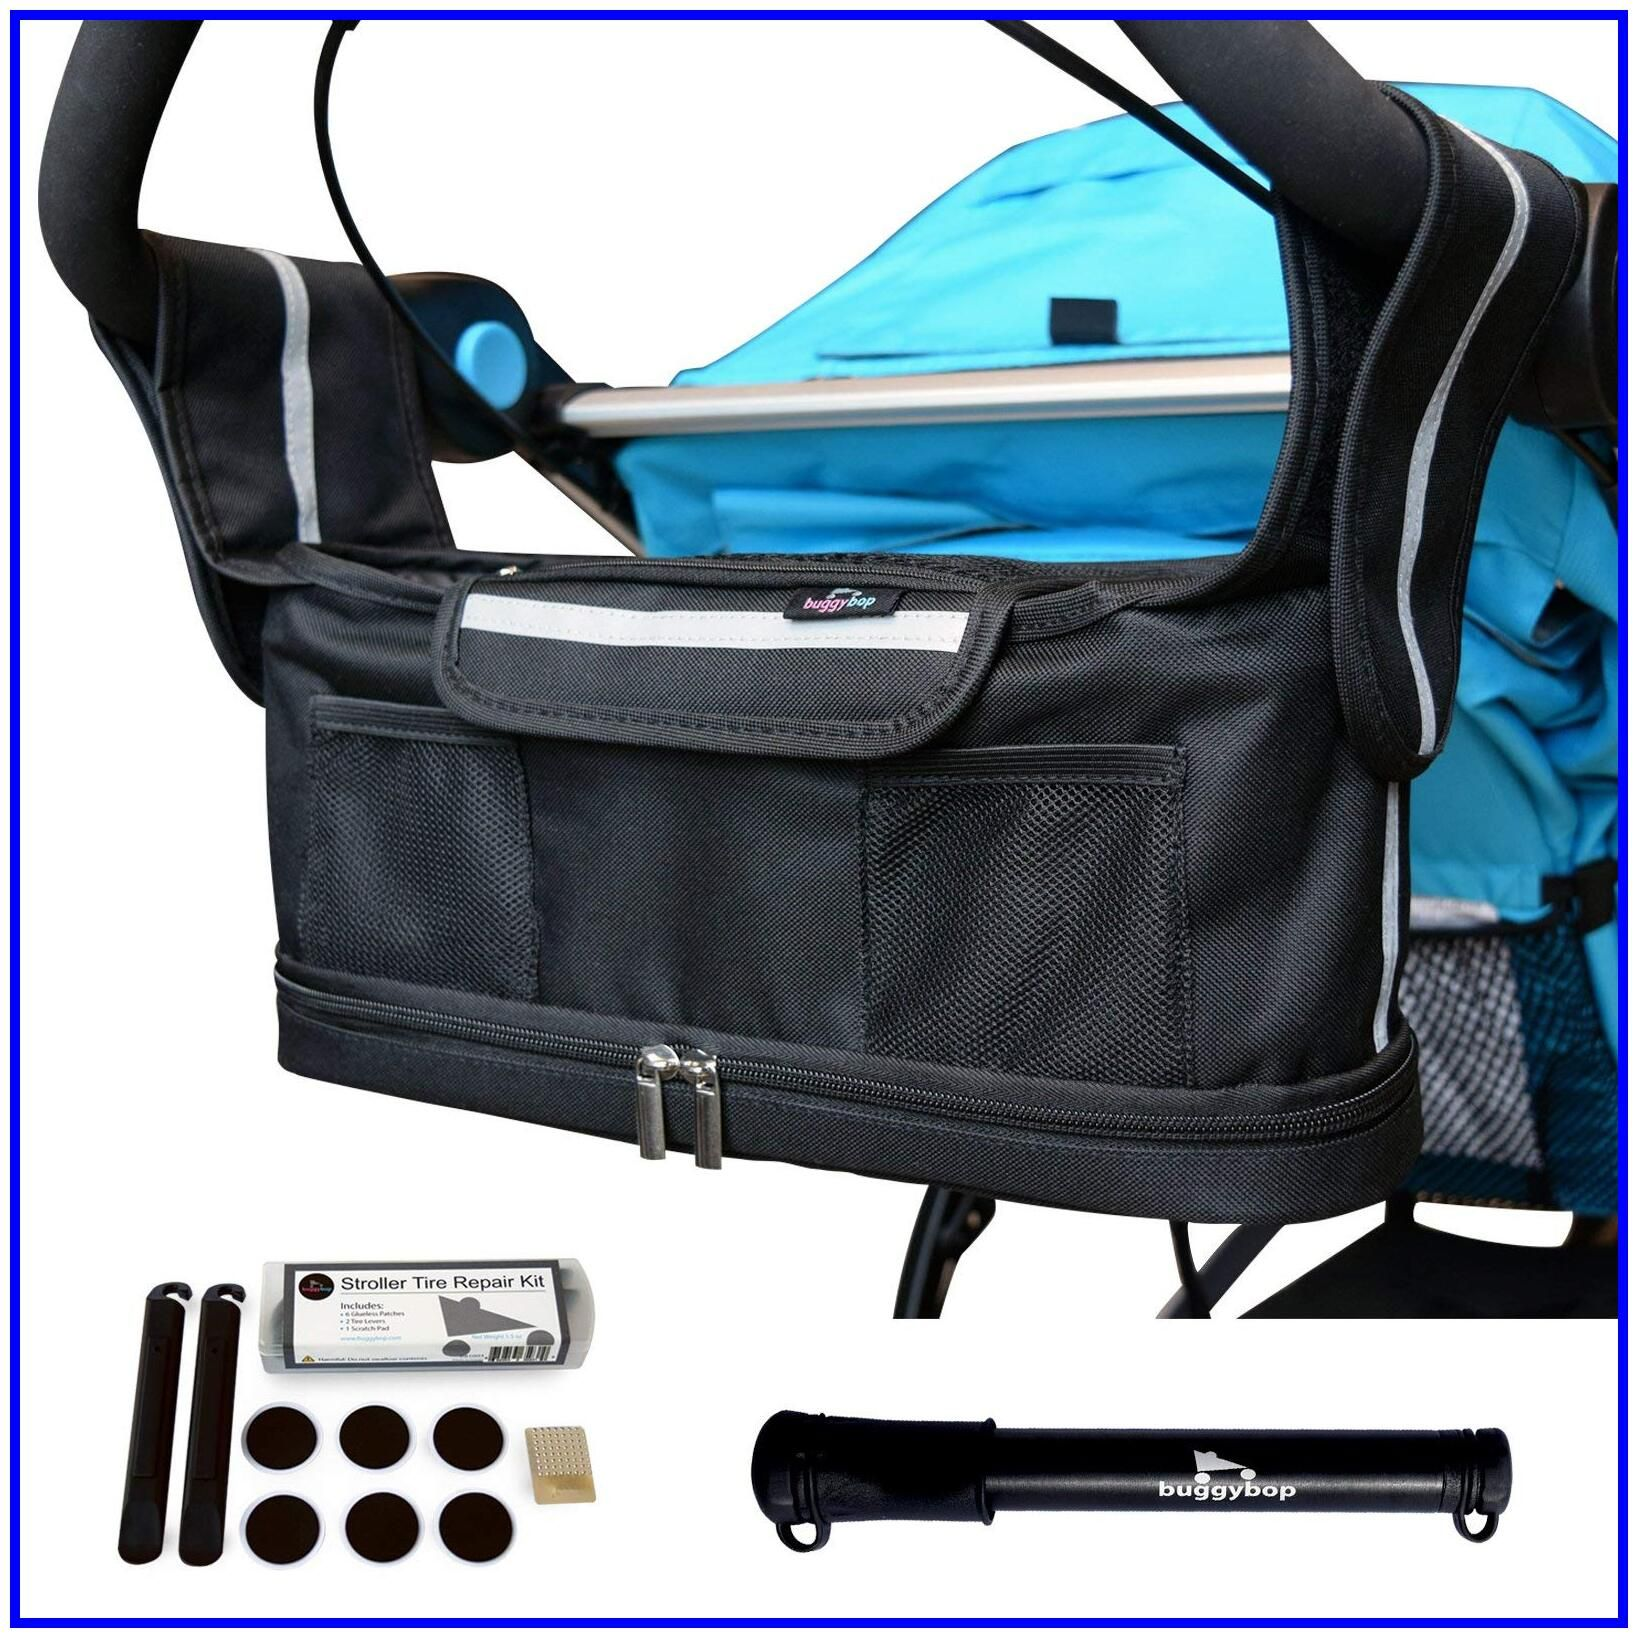 44 reference of stroller DIY double stroller organizer in